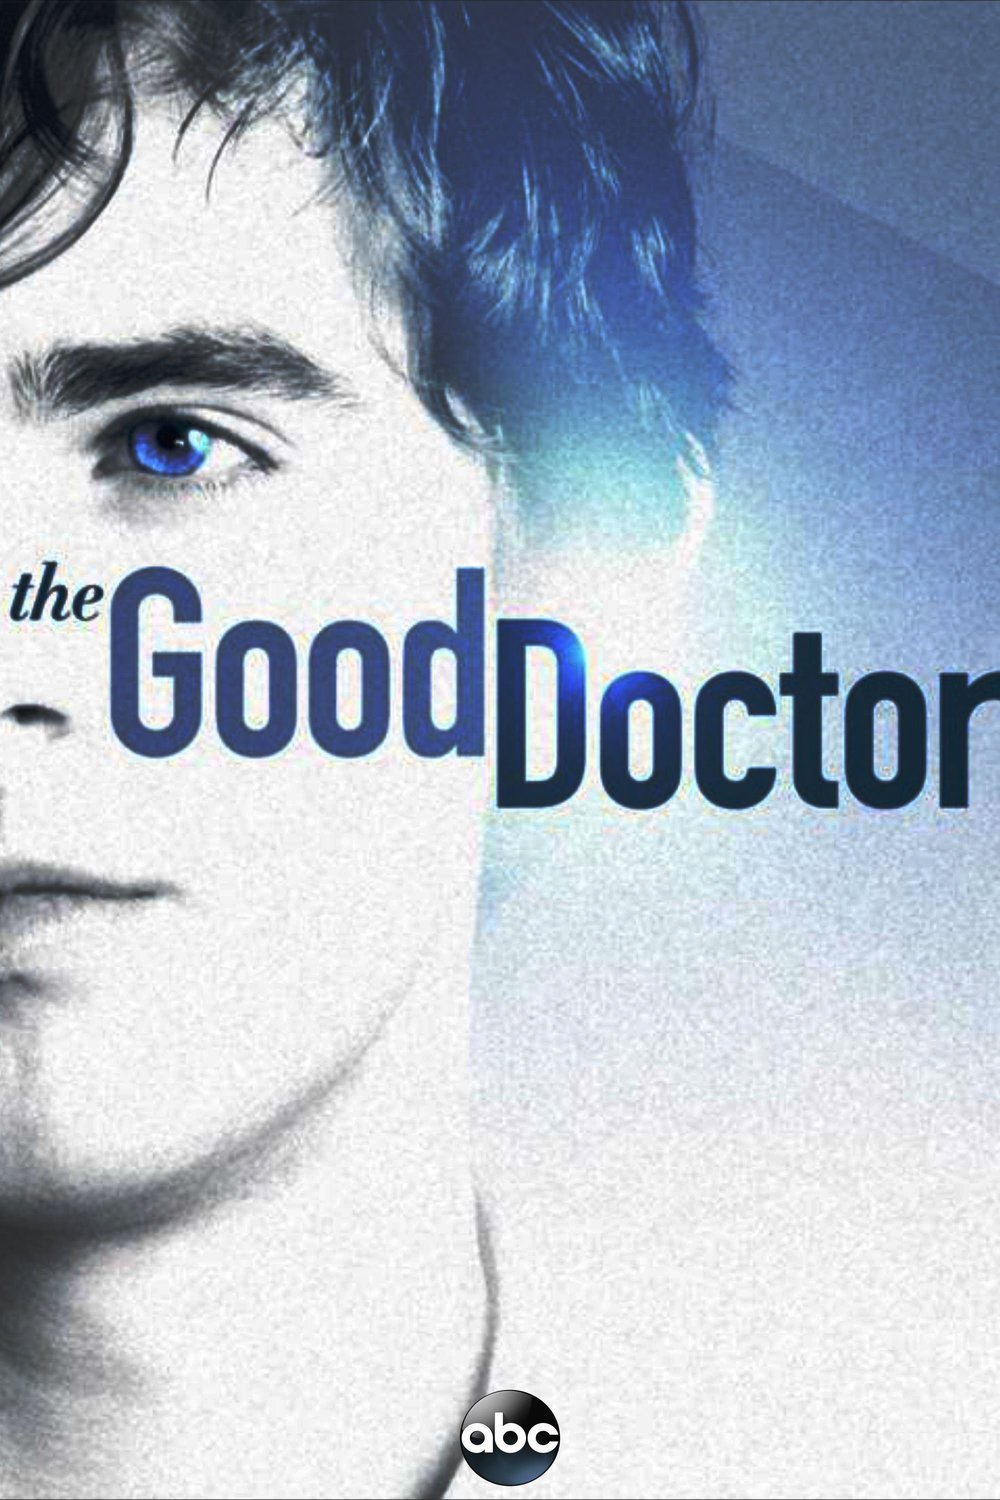 The Good Doctor 2017: Season1 - Full (1/6)